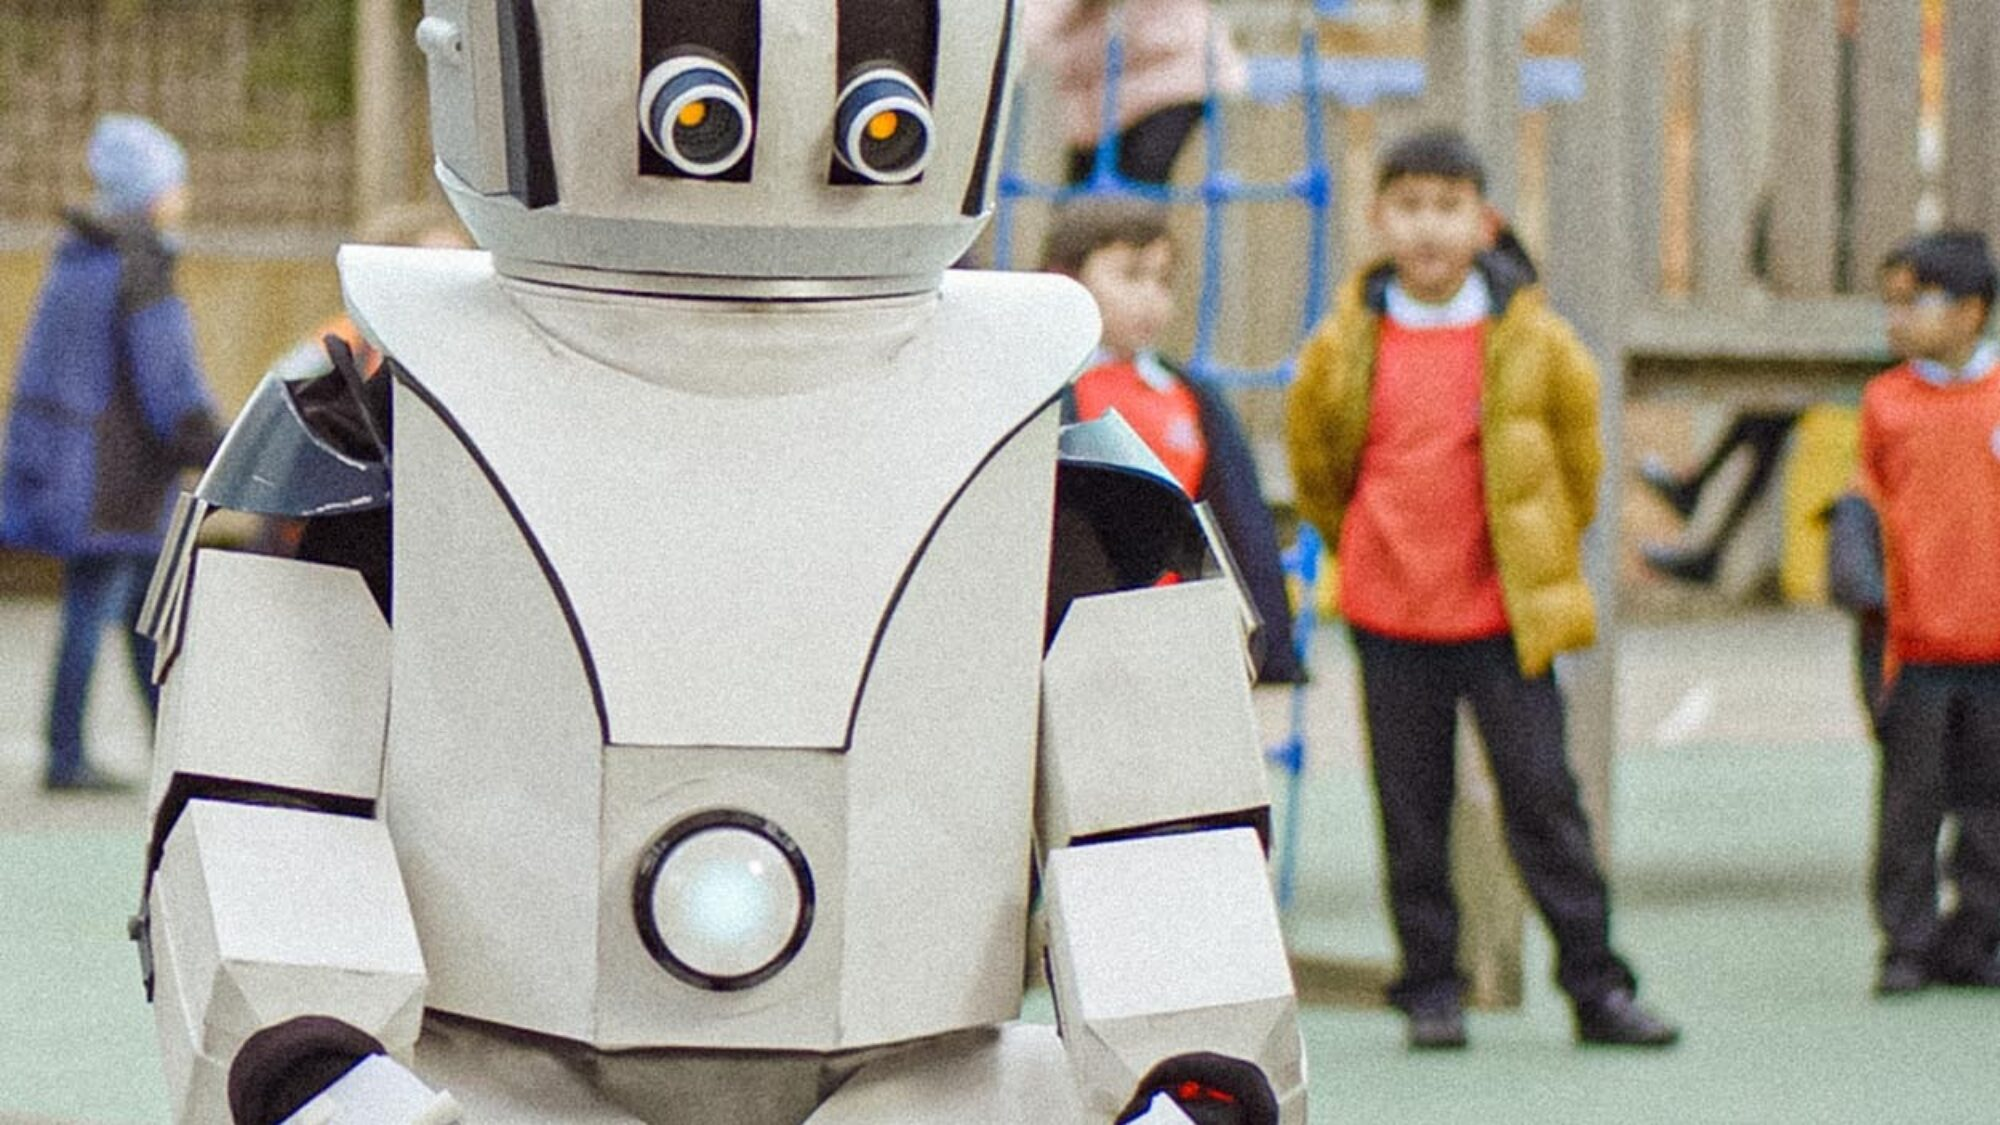 Child robot in a school playground from War Child's #EscapeRobot campaign